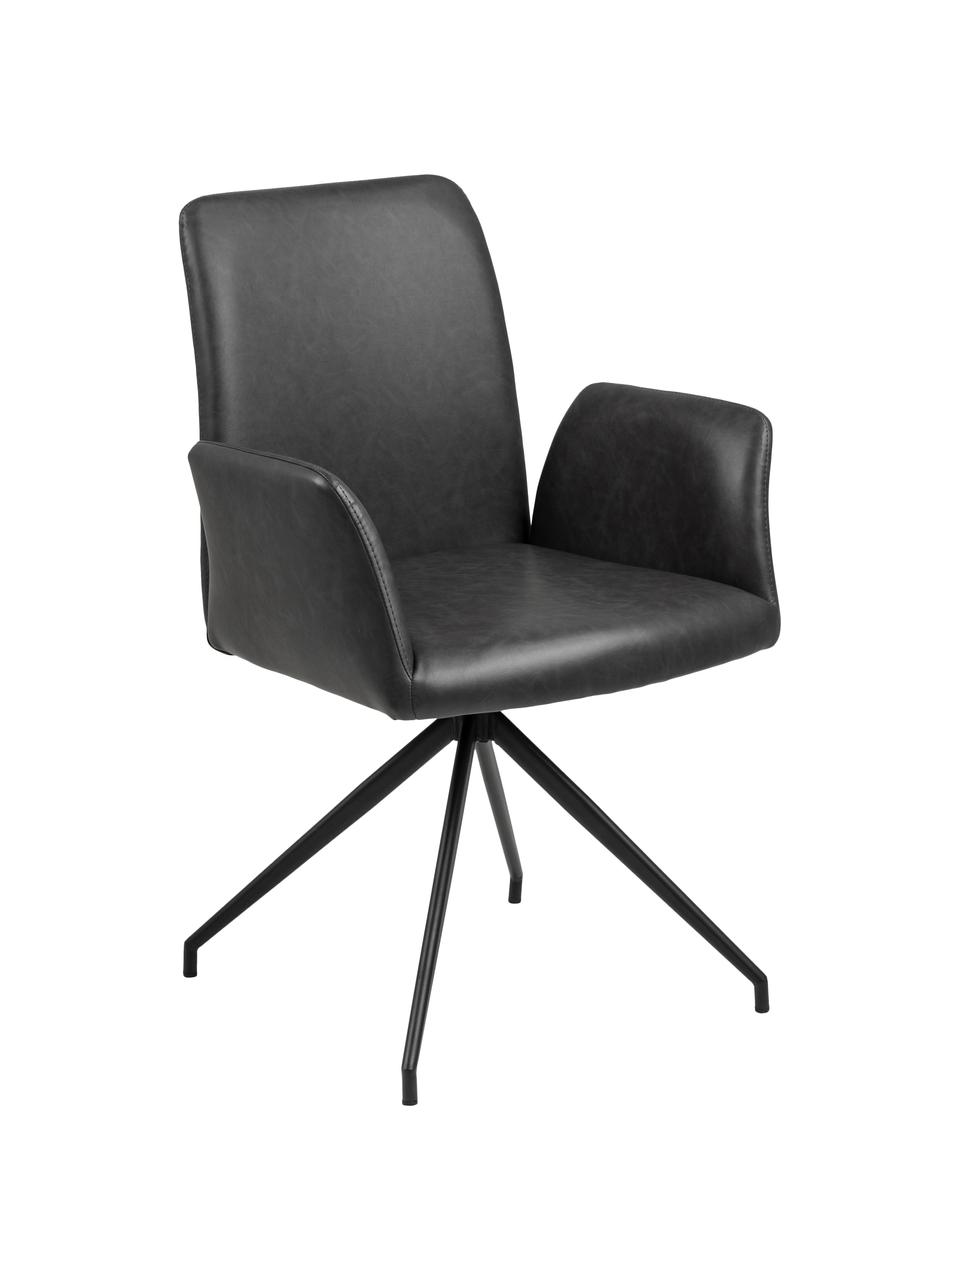 Chaise pivotante cuir synthétique Naya, Cuir synthétique anthracite